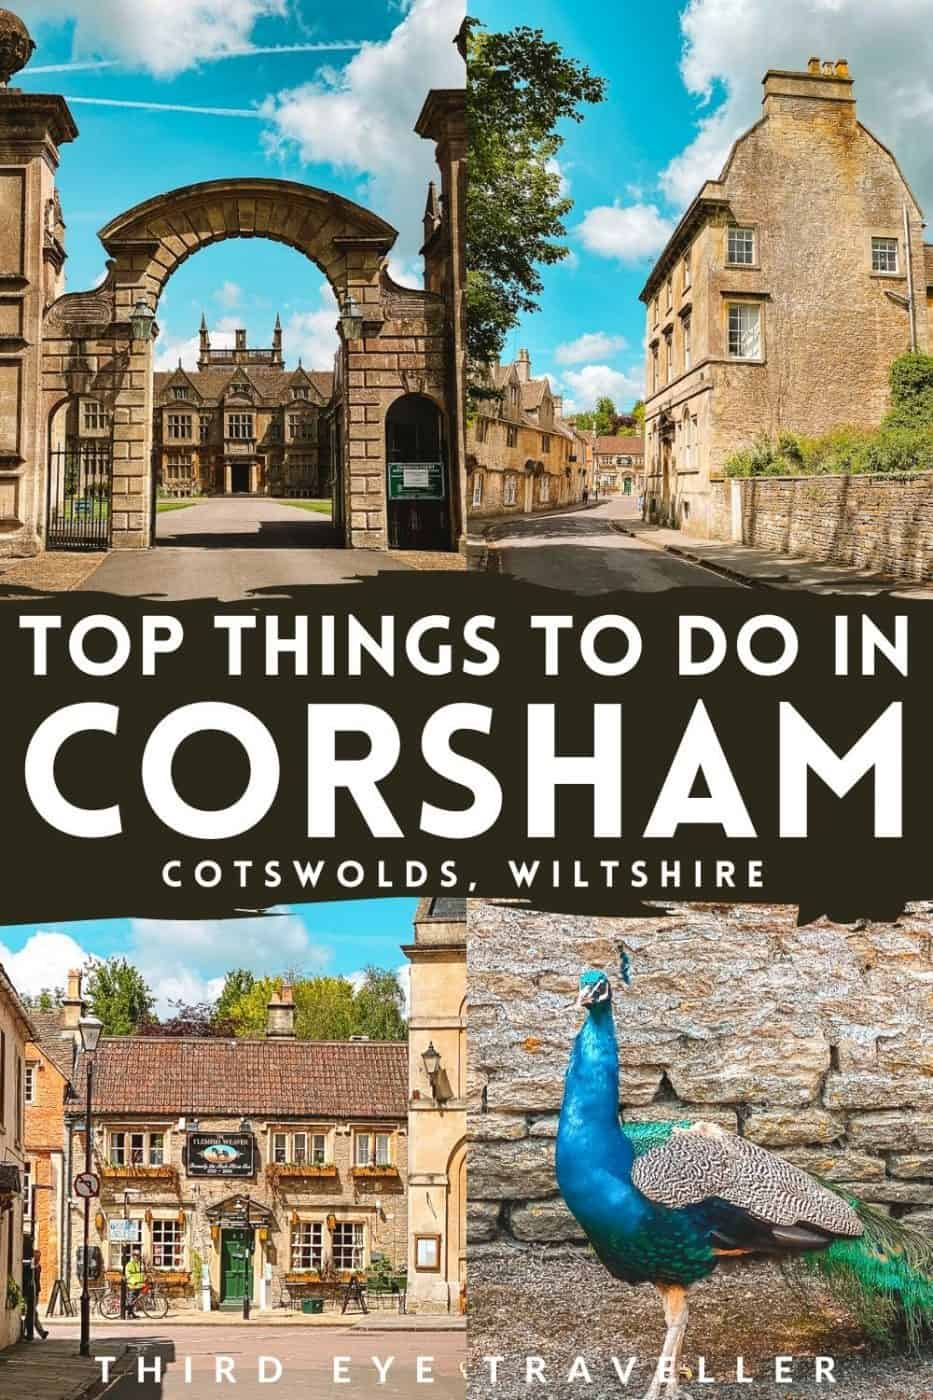 Things to do in Corsham Cotswolds Wiltshire